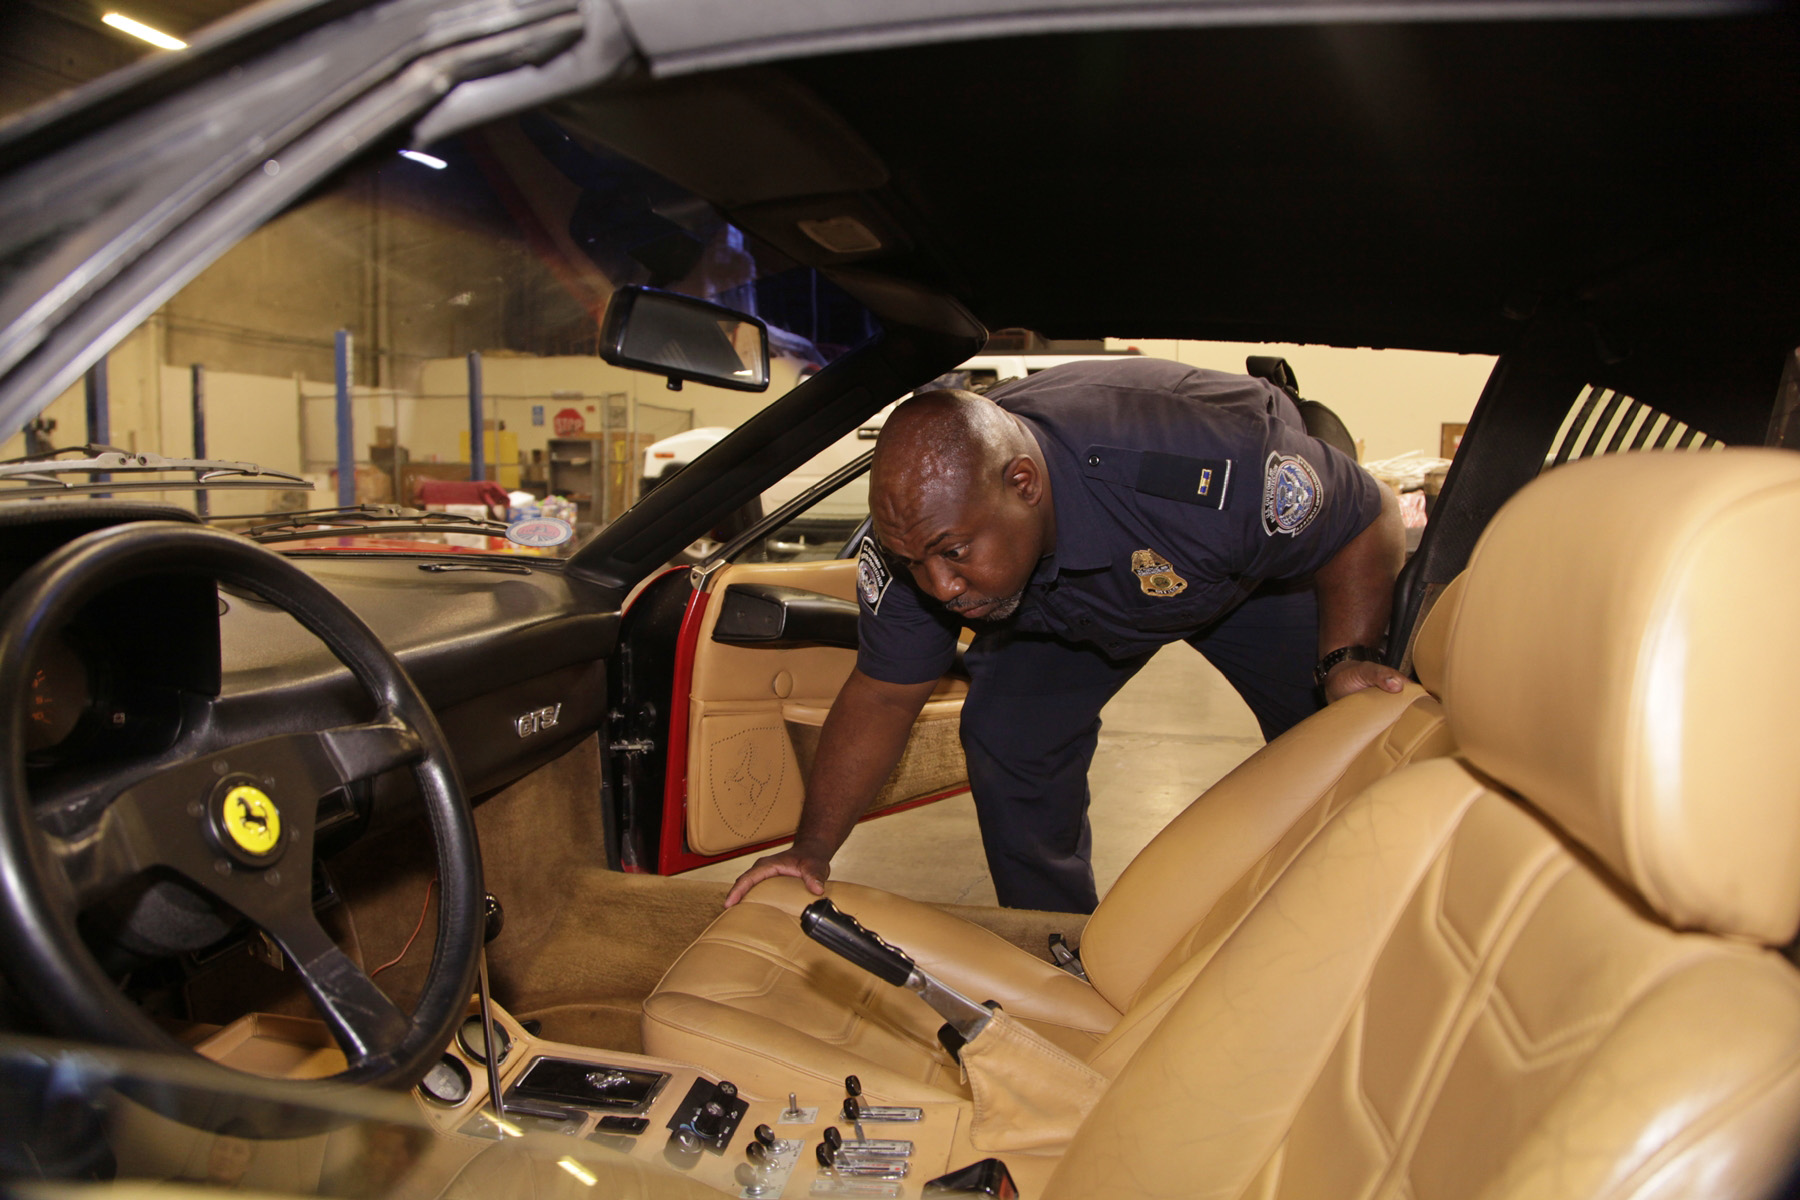 A Customs and Border Protection Officer inspects the interior of the stolen Ferrari